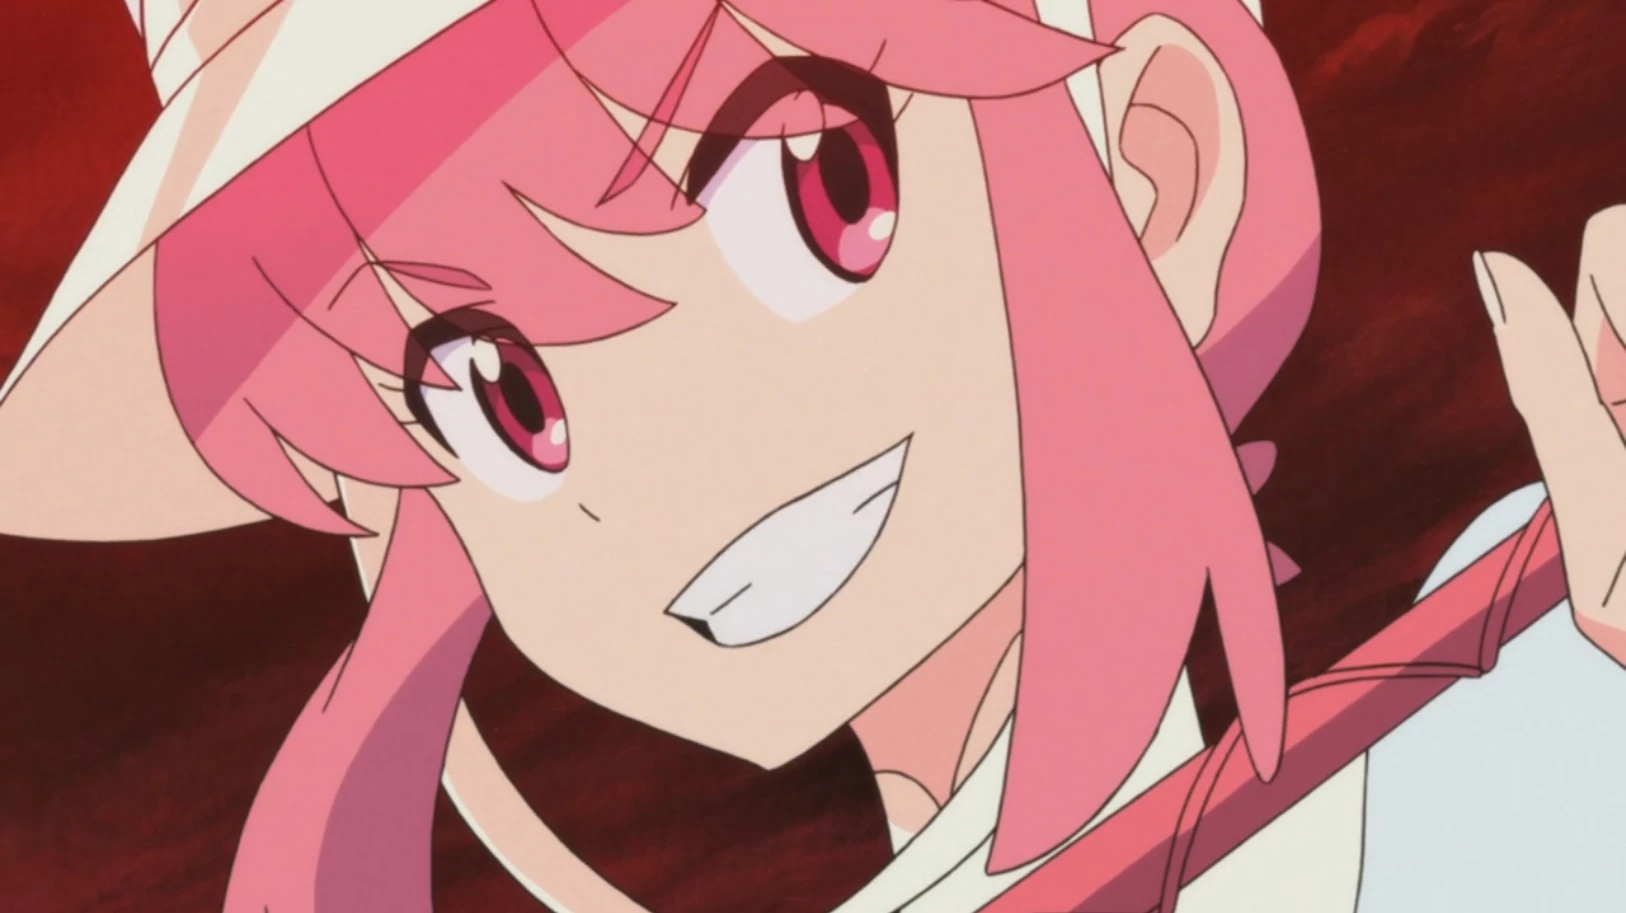 Pin on Kill la Kill